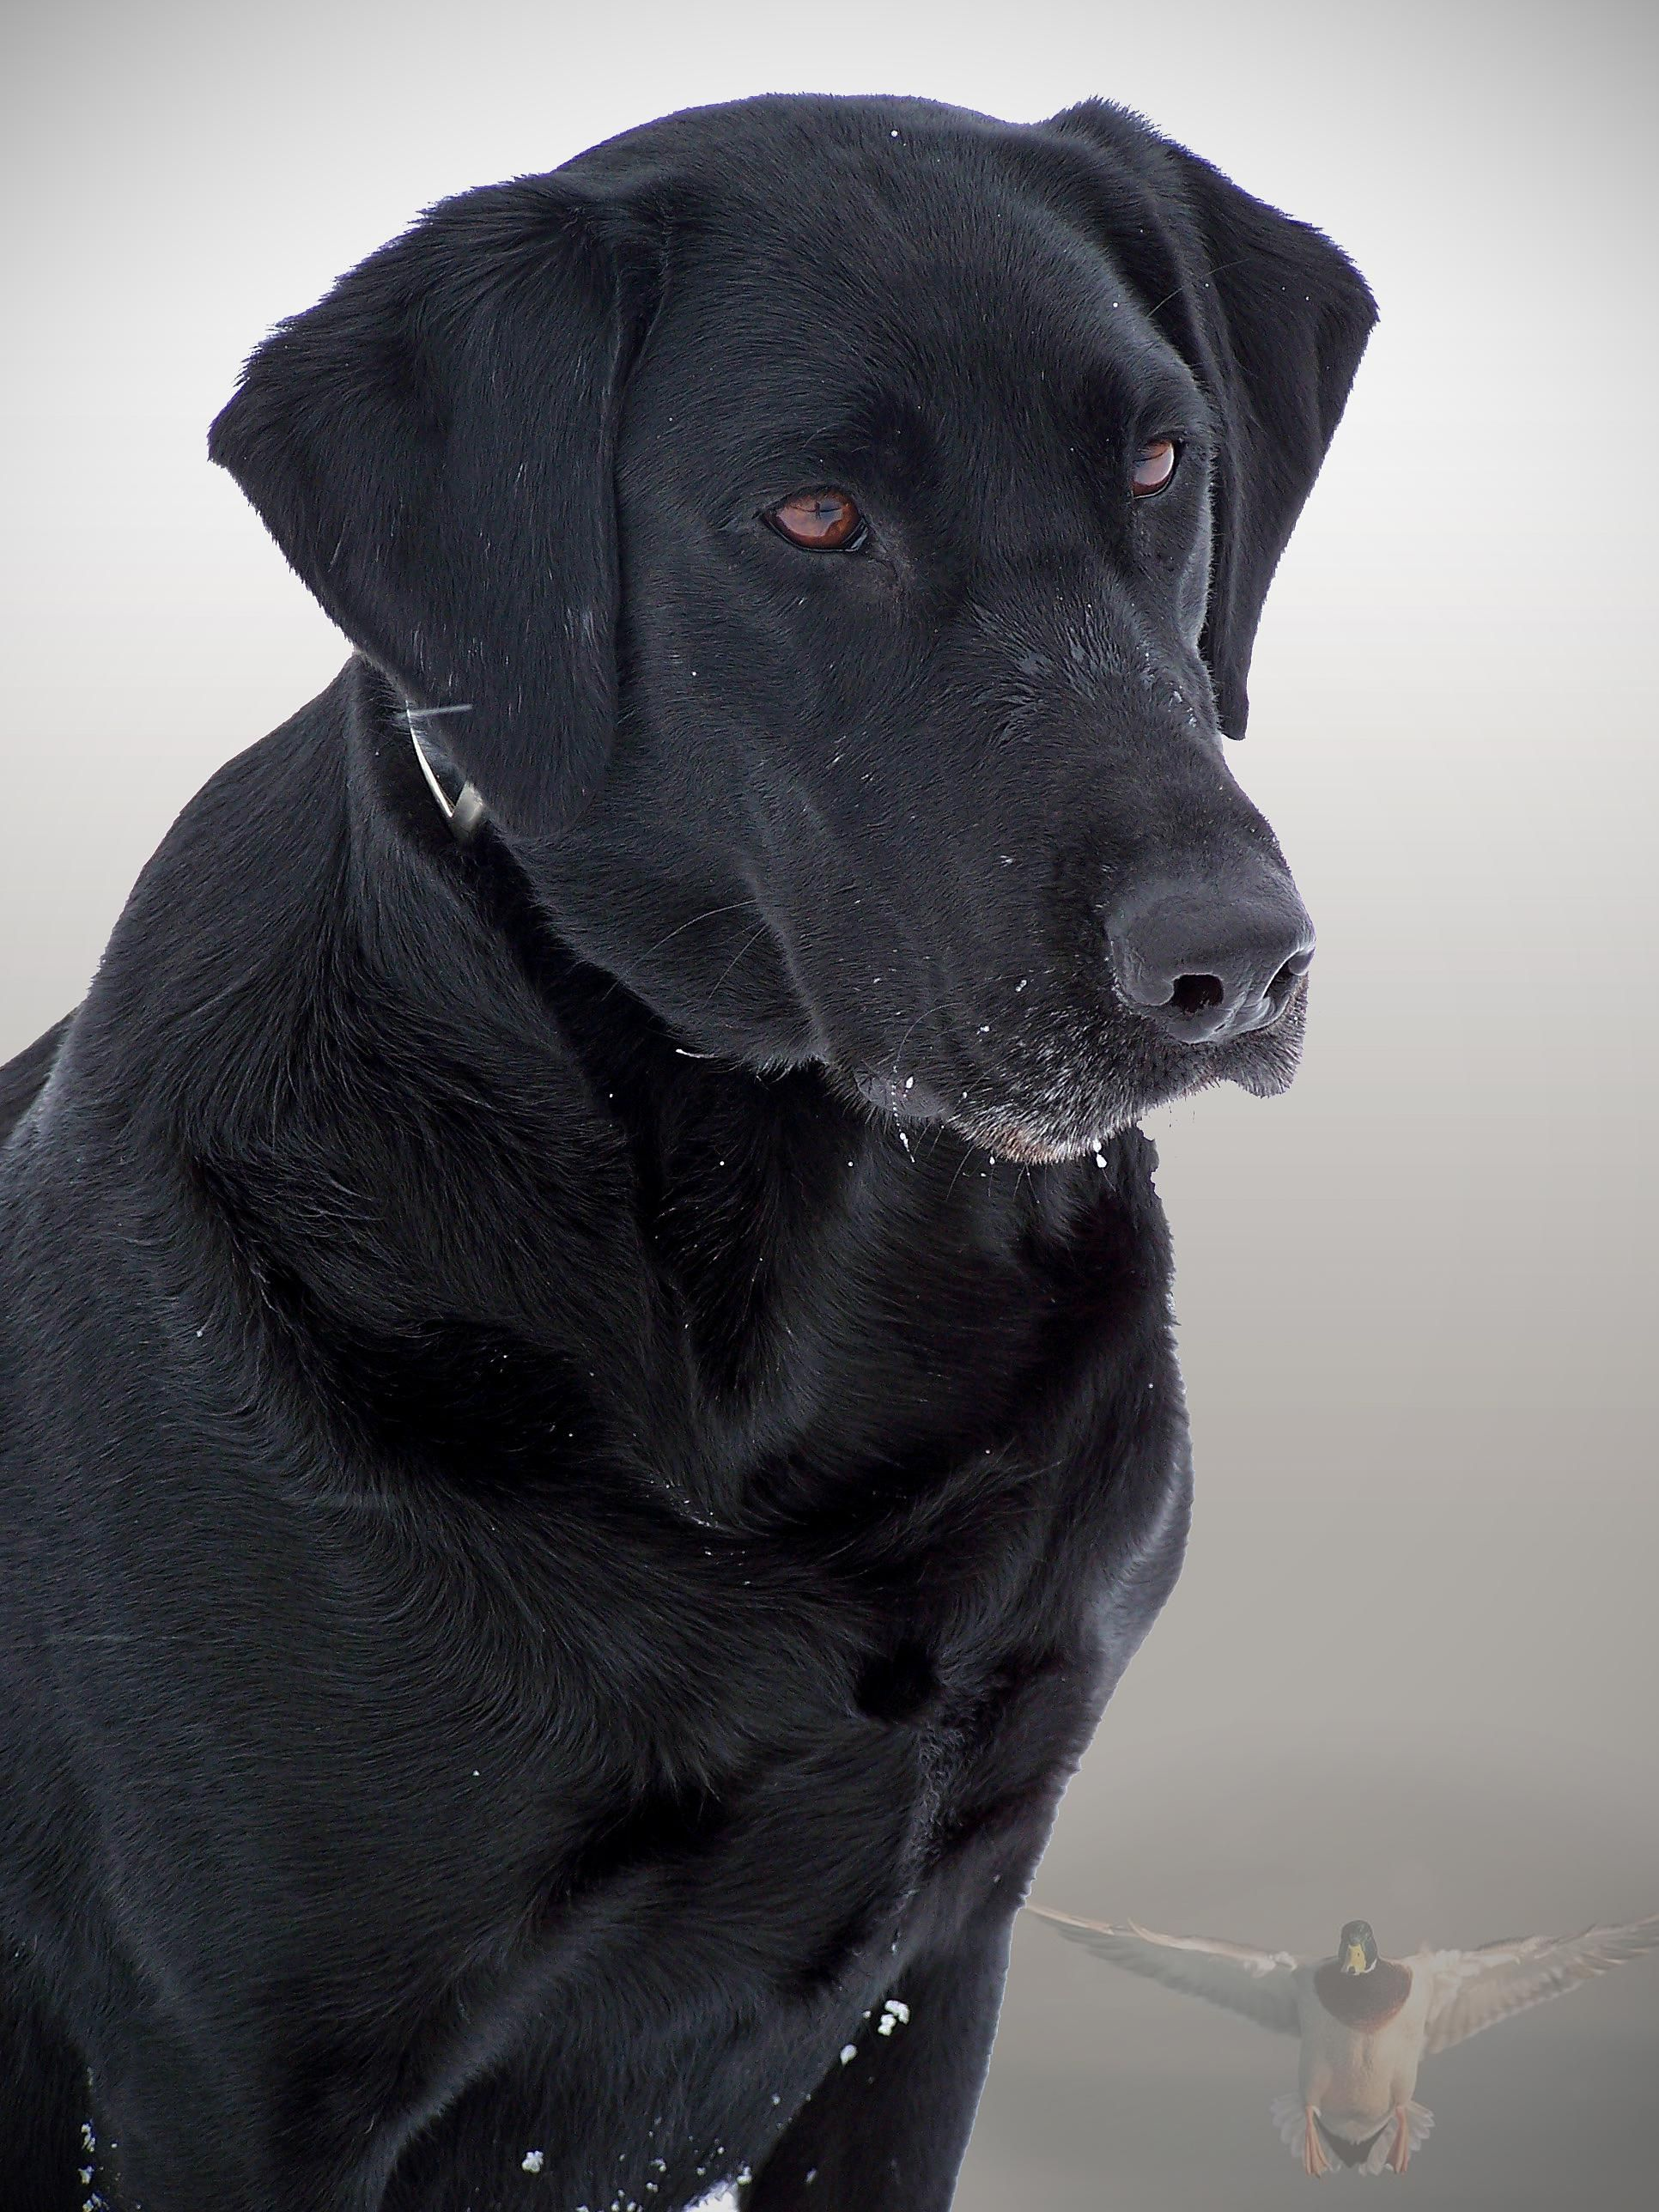 File:Black dog.jpg - Wikimedia Commons